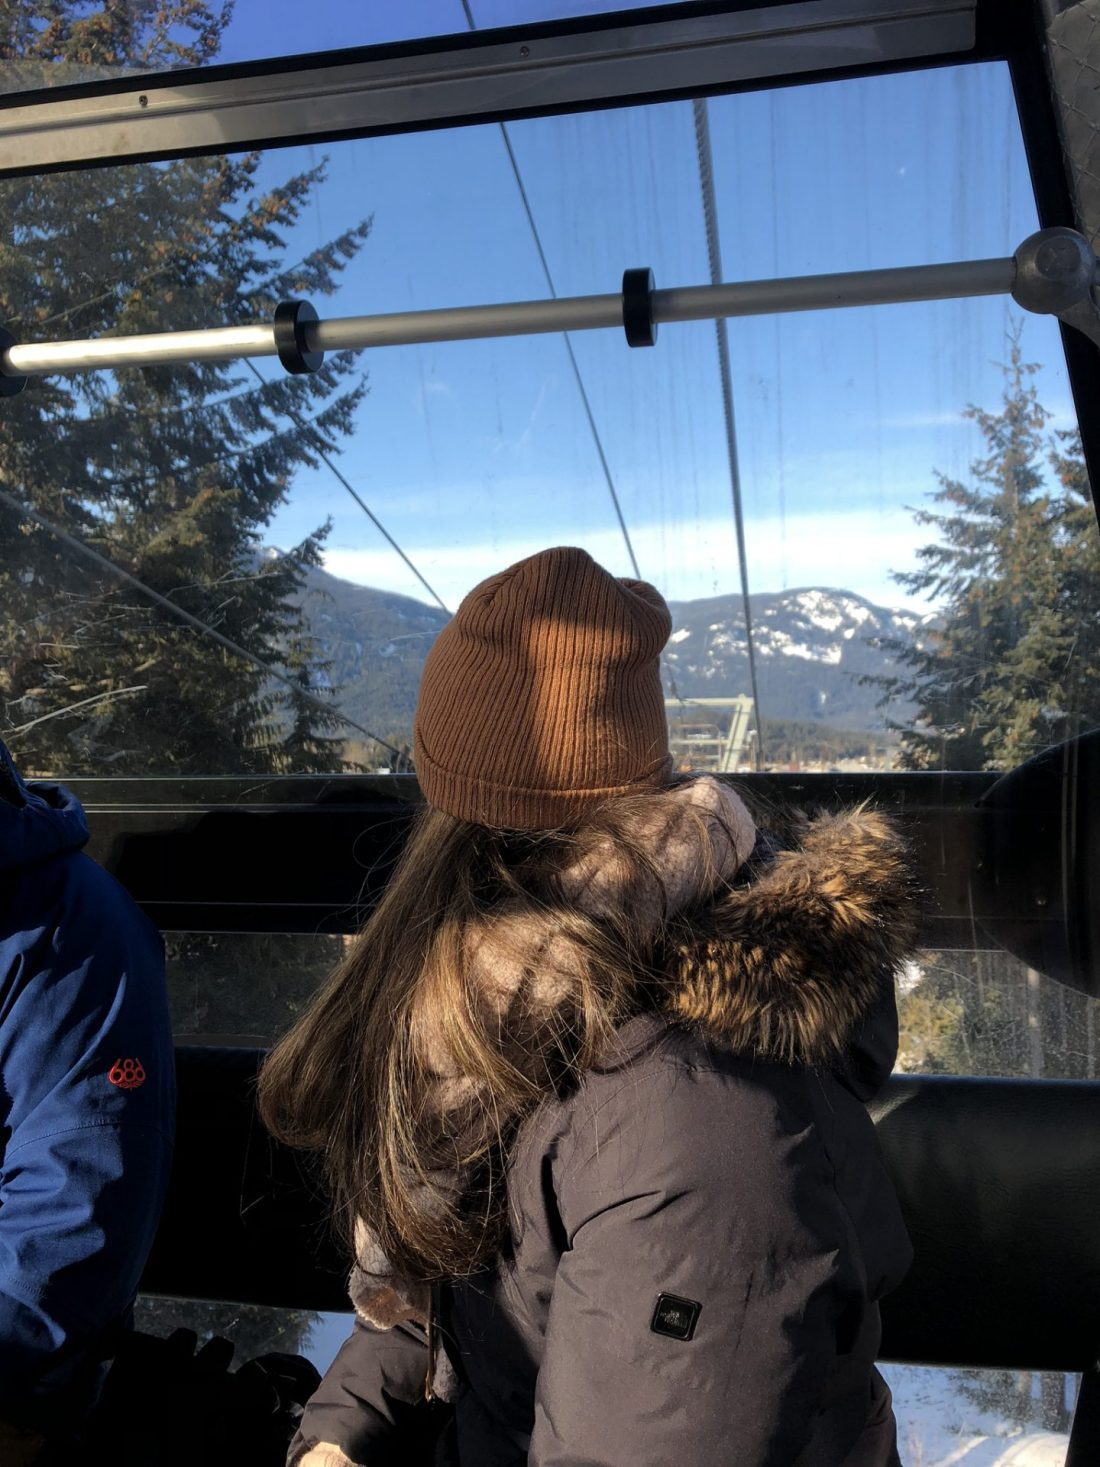 Views from the ski lift up to Whistler